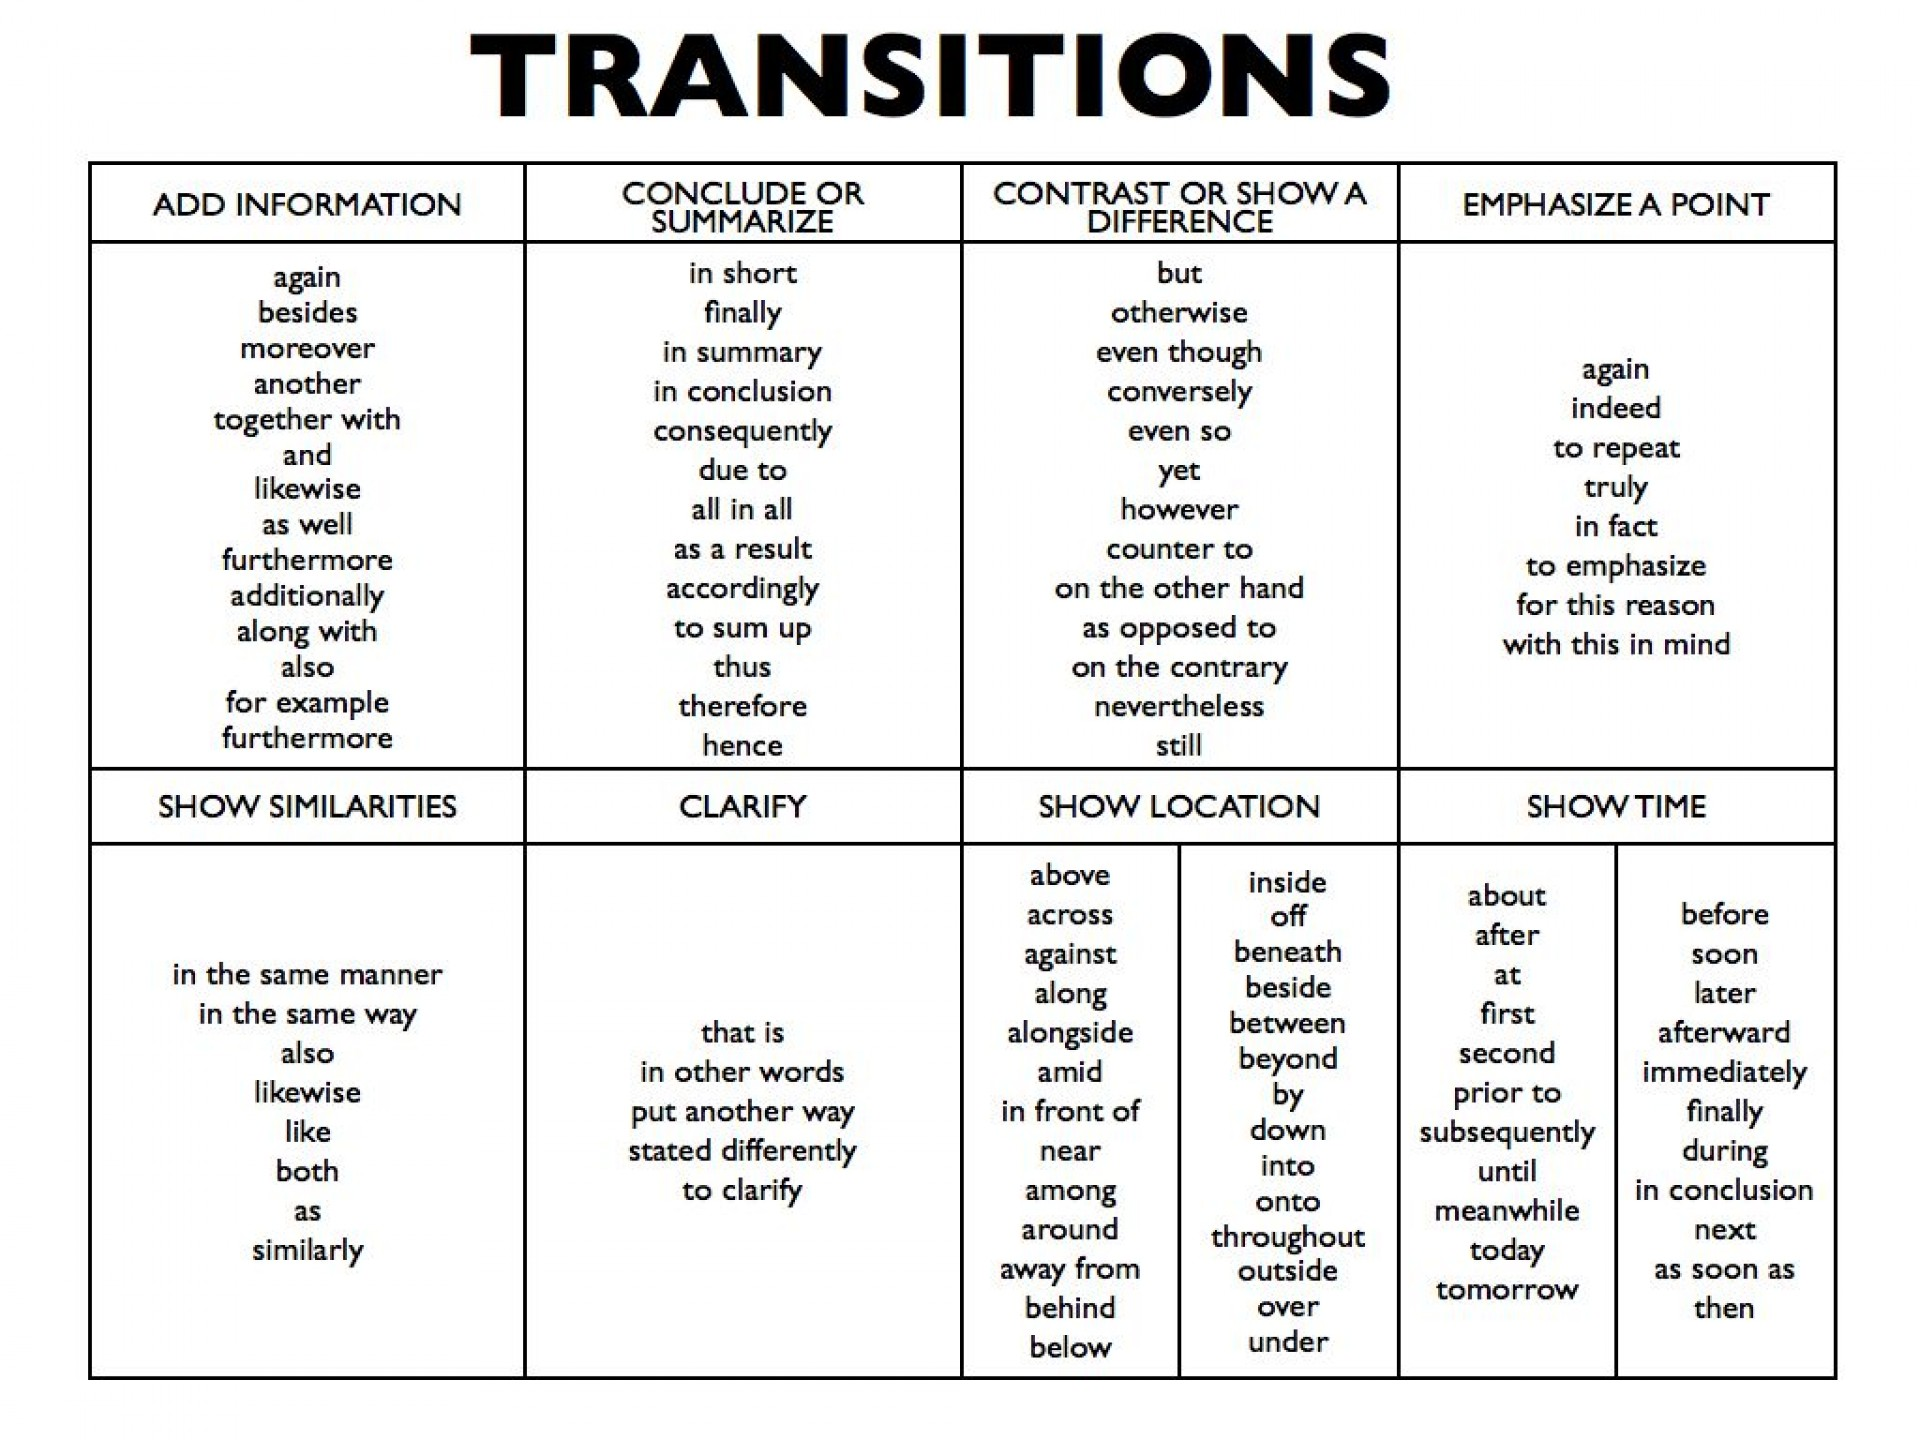 005 Essay Example Transitions 4995883 1 Orig Archaicawful Transition Words And Phrases List For Argumentative First Paragraph 1920